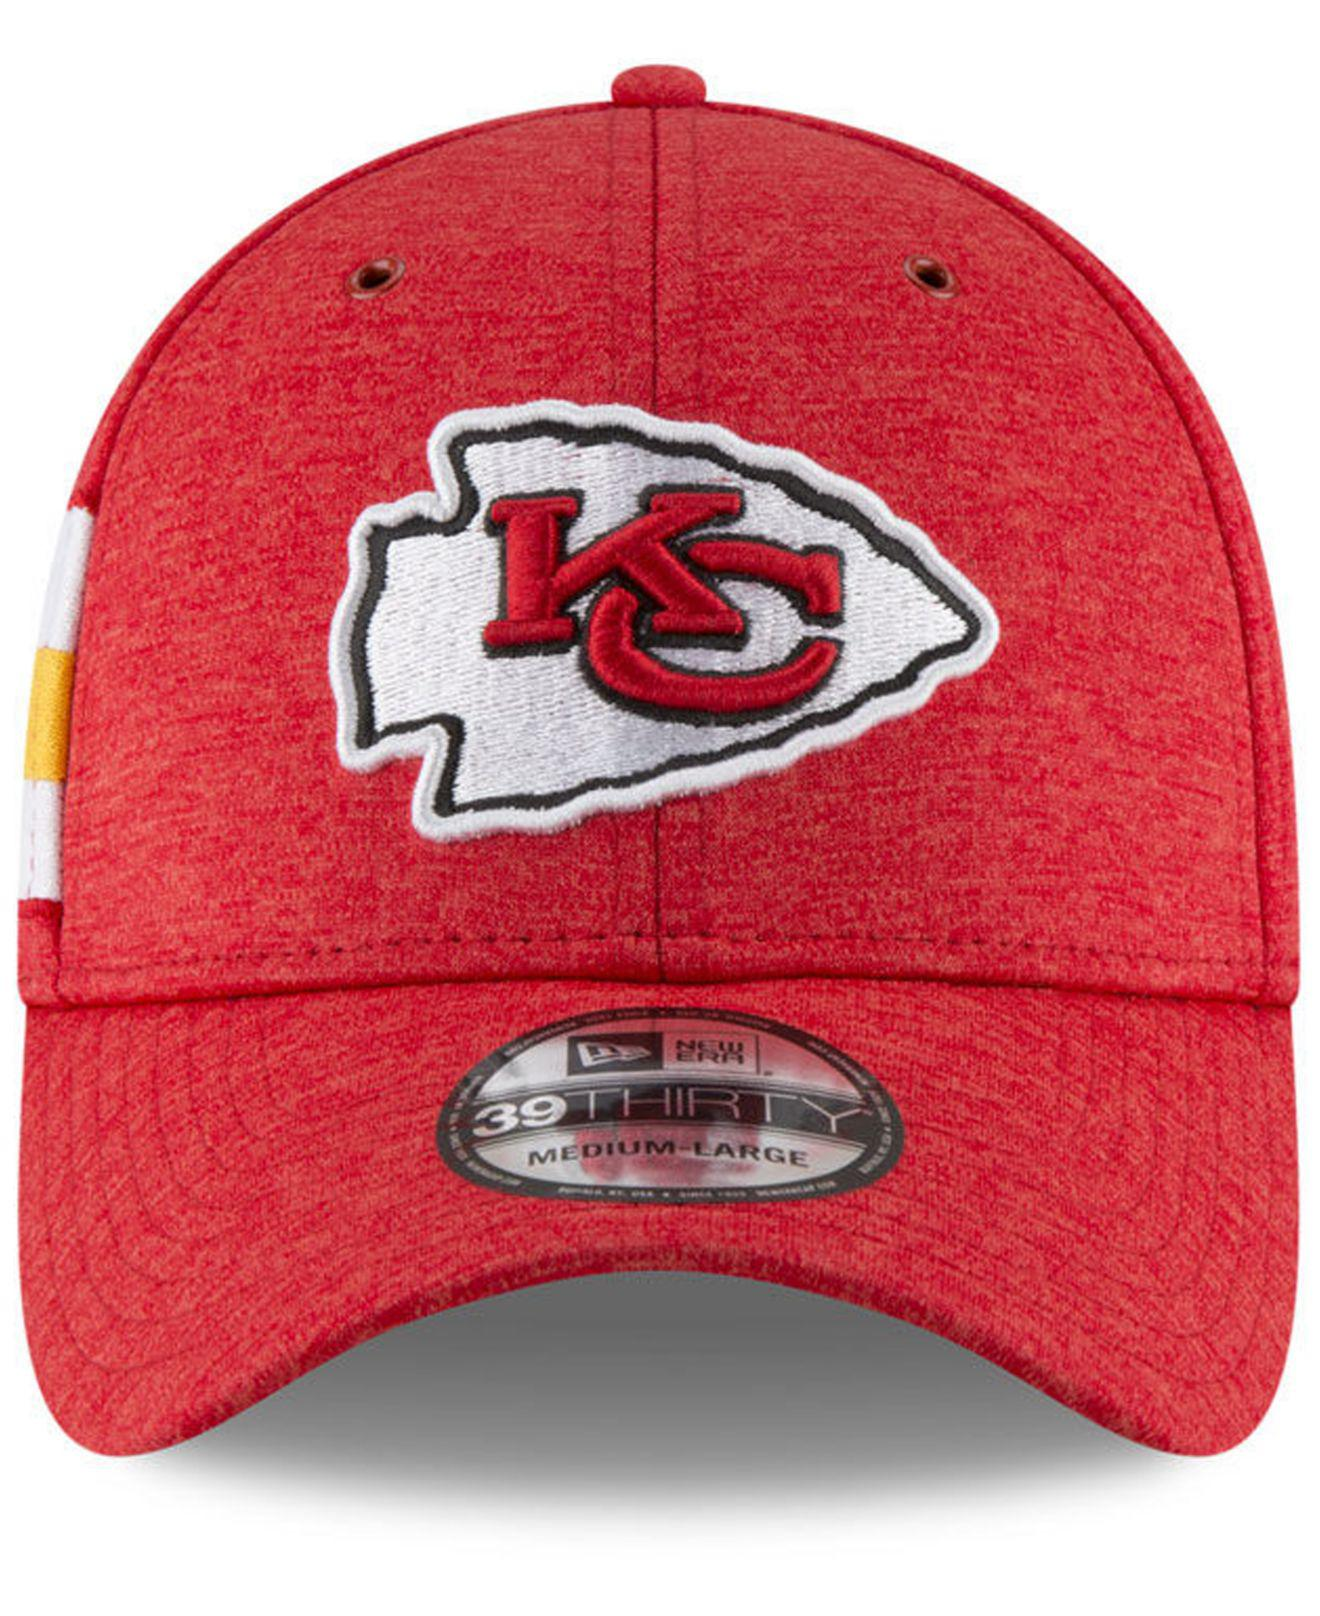 best service 8b13e f5c42 Lyst - Ktz Kansas City Chiefs On Field Sideline Home 39thirty Cap in Red  for Men